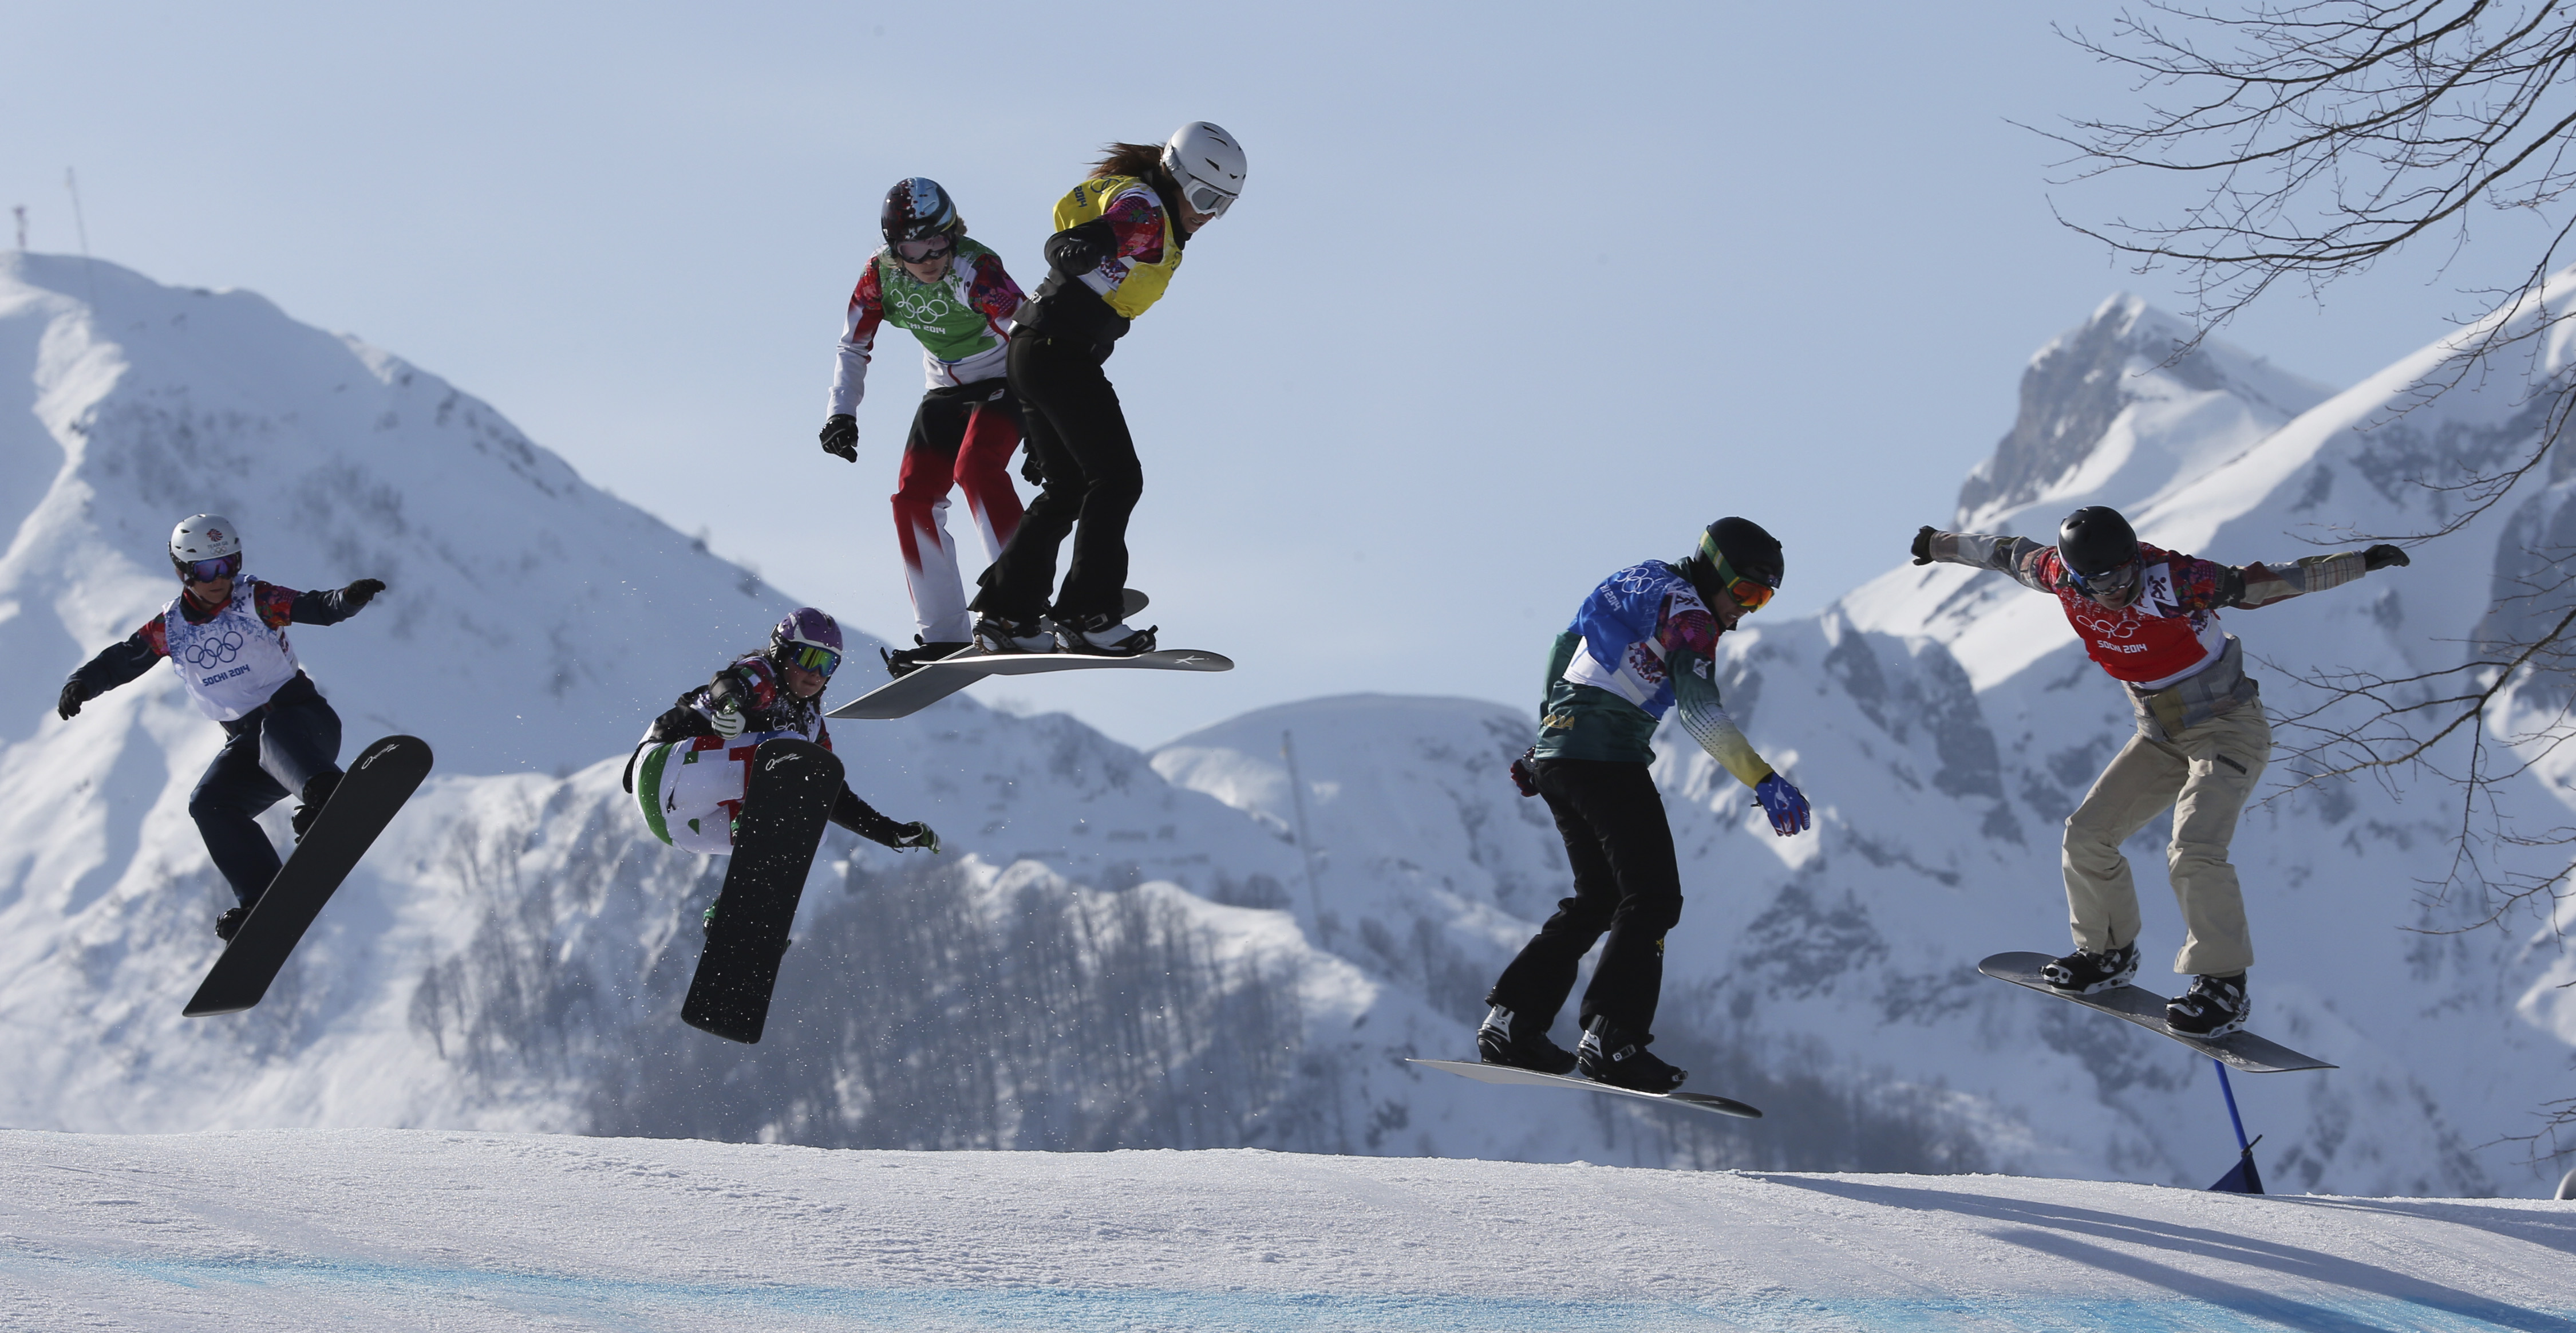 Lindsey Jacobellis, right,  of the United States leads during the women's snowboard cross semifinal at the Rosa Khutor Extreme Park, at the 2014 Winter Olympics, Sunday, Feb. 16, 2014, in Krasnaya Polyana, Russia. The other riders are, from left, Britain's Zoe Gillings, Italy's Michela Moioli, Canada's Dominique Maltais, Bulgaria's Alexandra Jekova, and Australia's Belle Brockhoff.